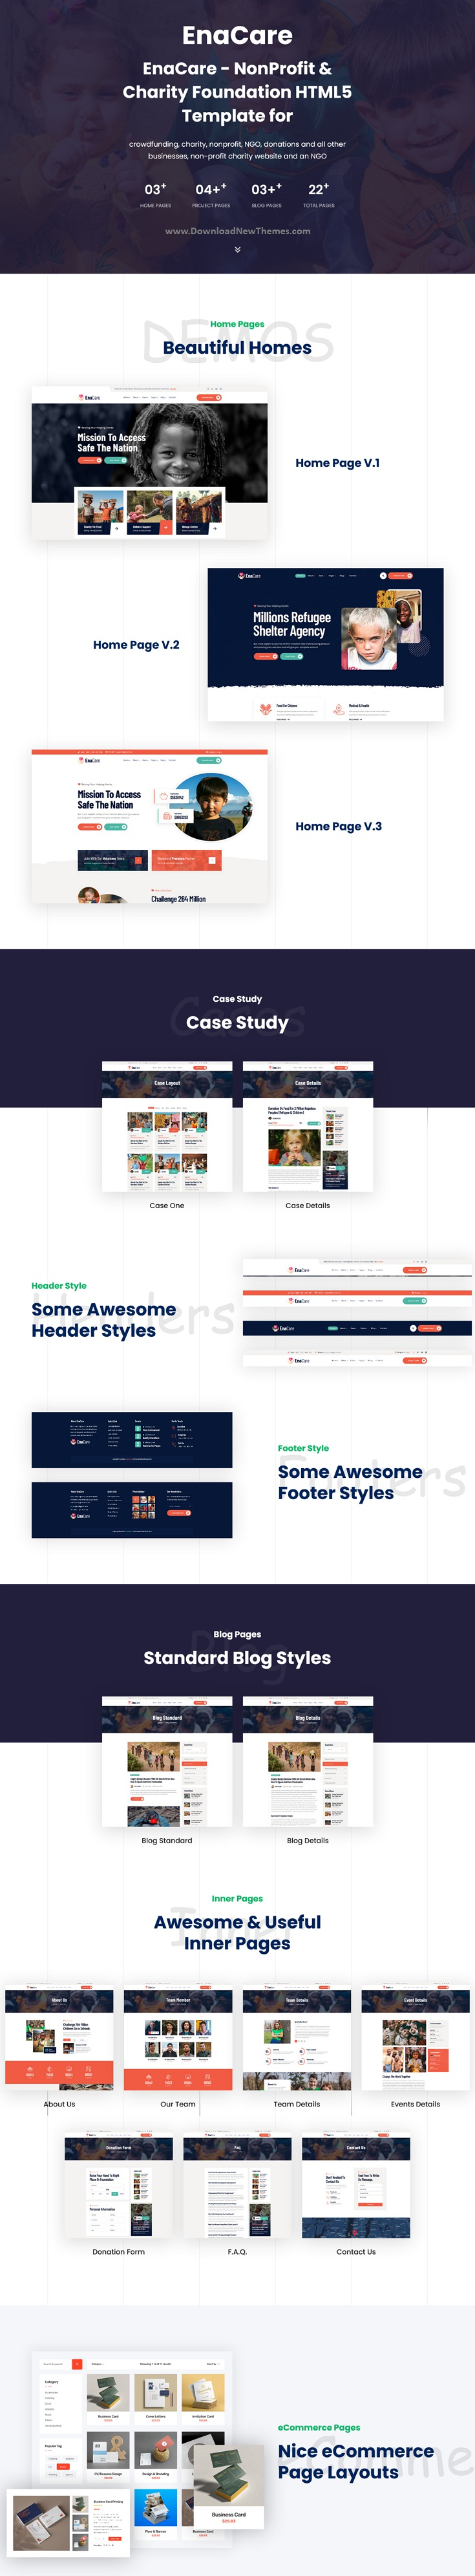 NonProfit & Charity Foundation Bootstrap Template